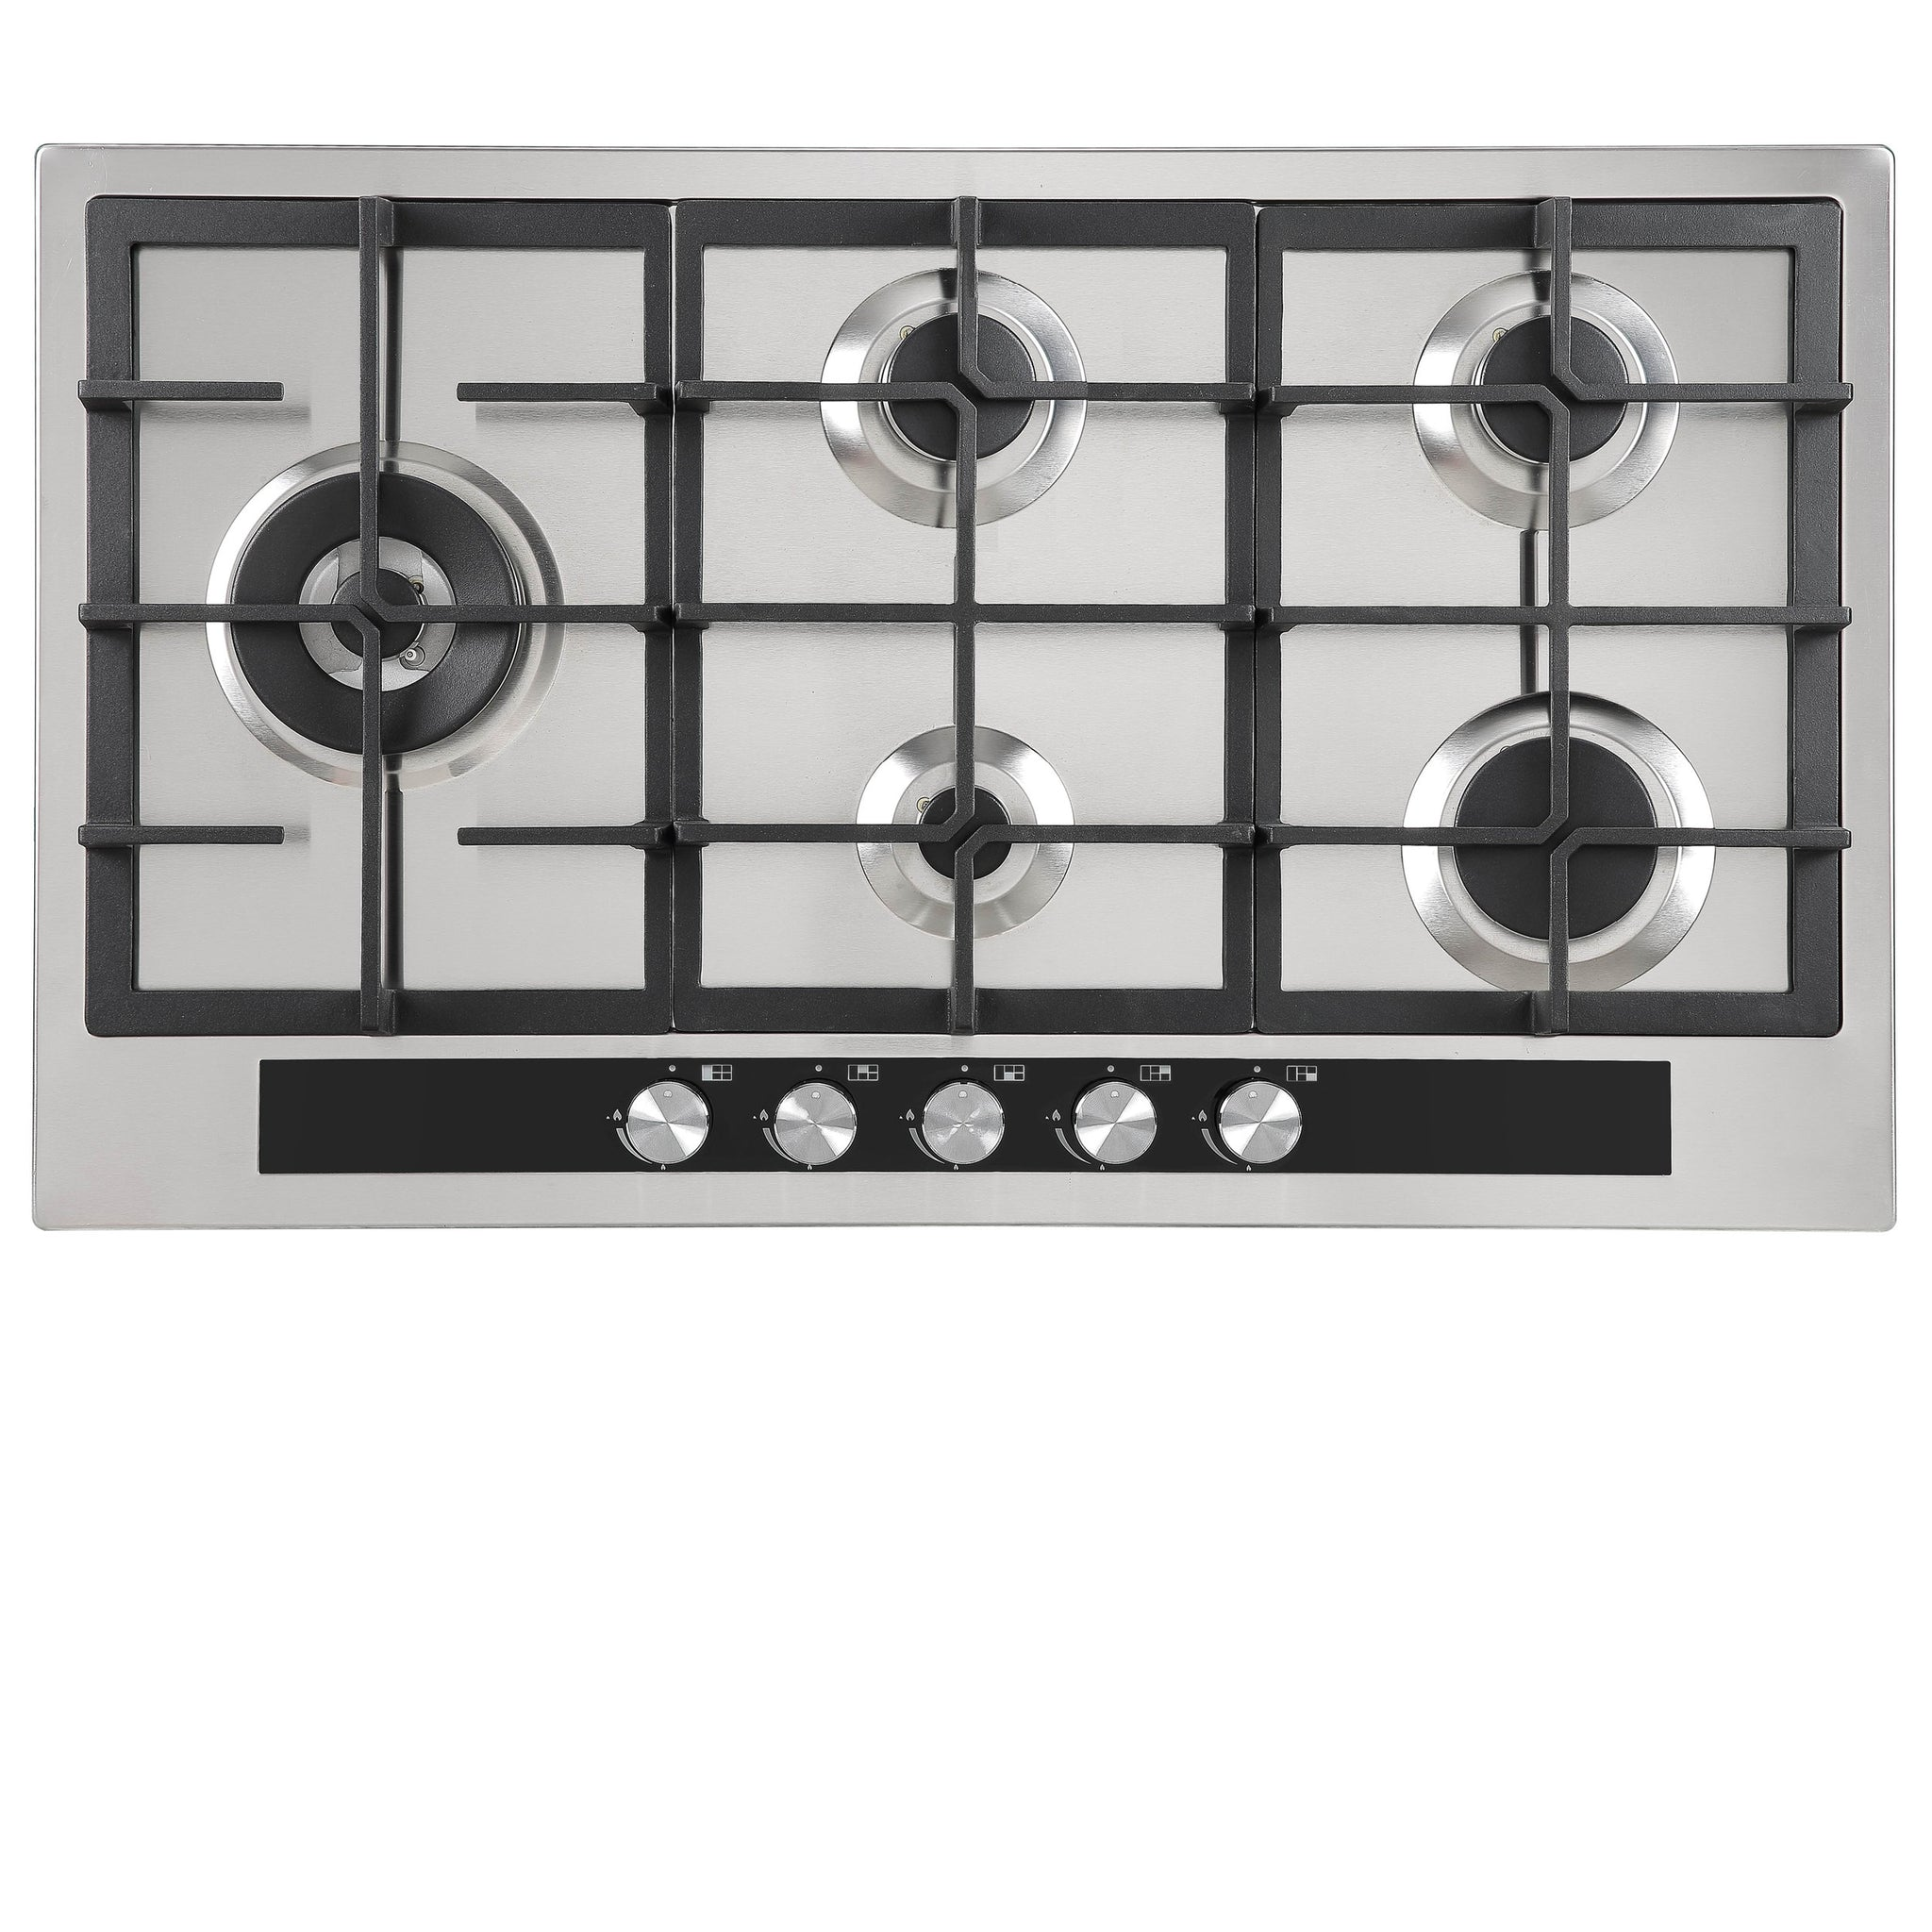 Inalto ICG905W 86cm Gas Cooktop with Wok Burner